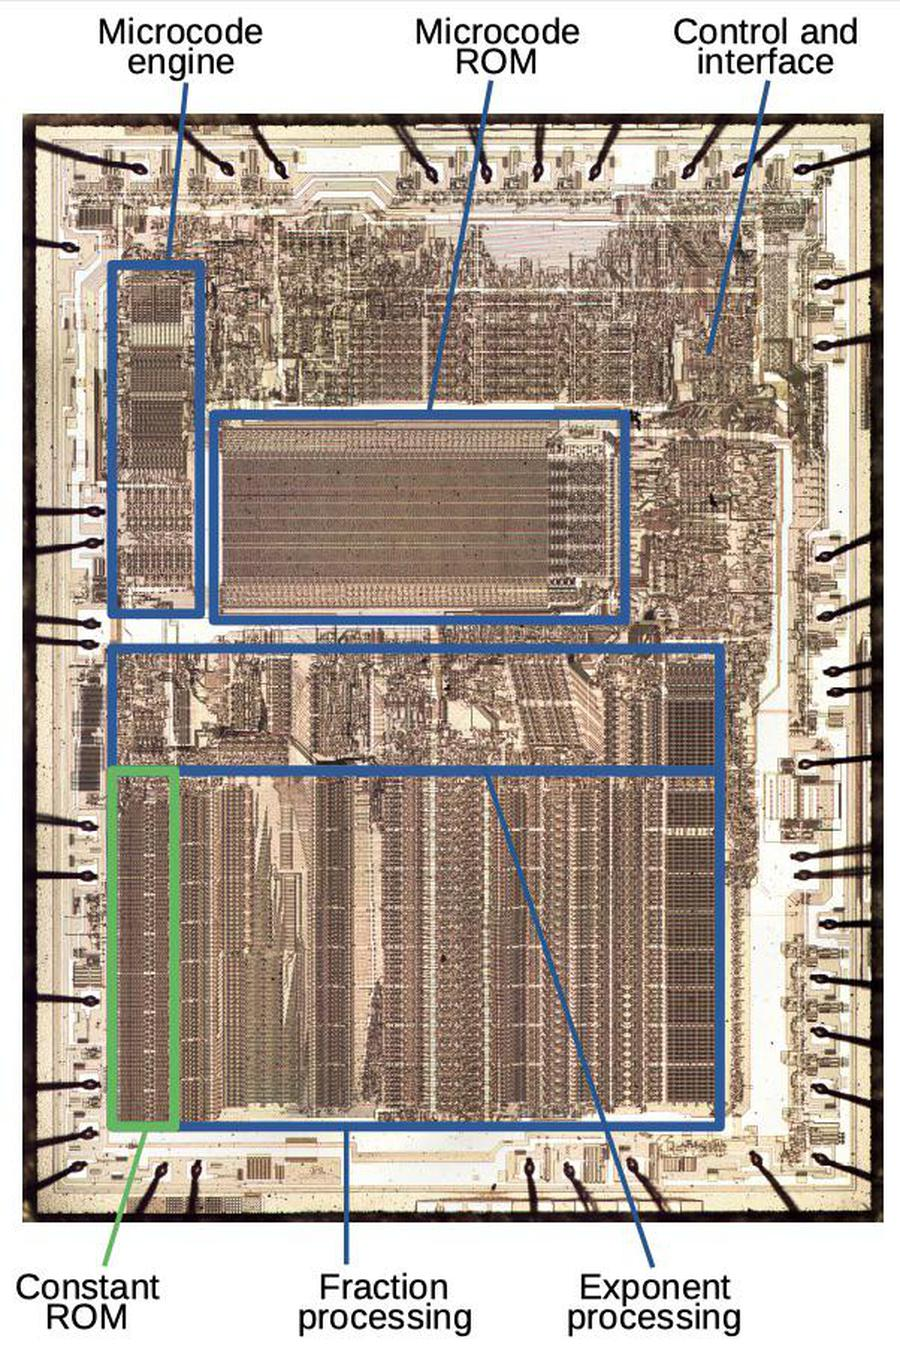 Die of the Intel 8087 floating point unit chip, with main functional blocks labeled. The constant ROM is outlined in green. Click for a larger image.